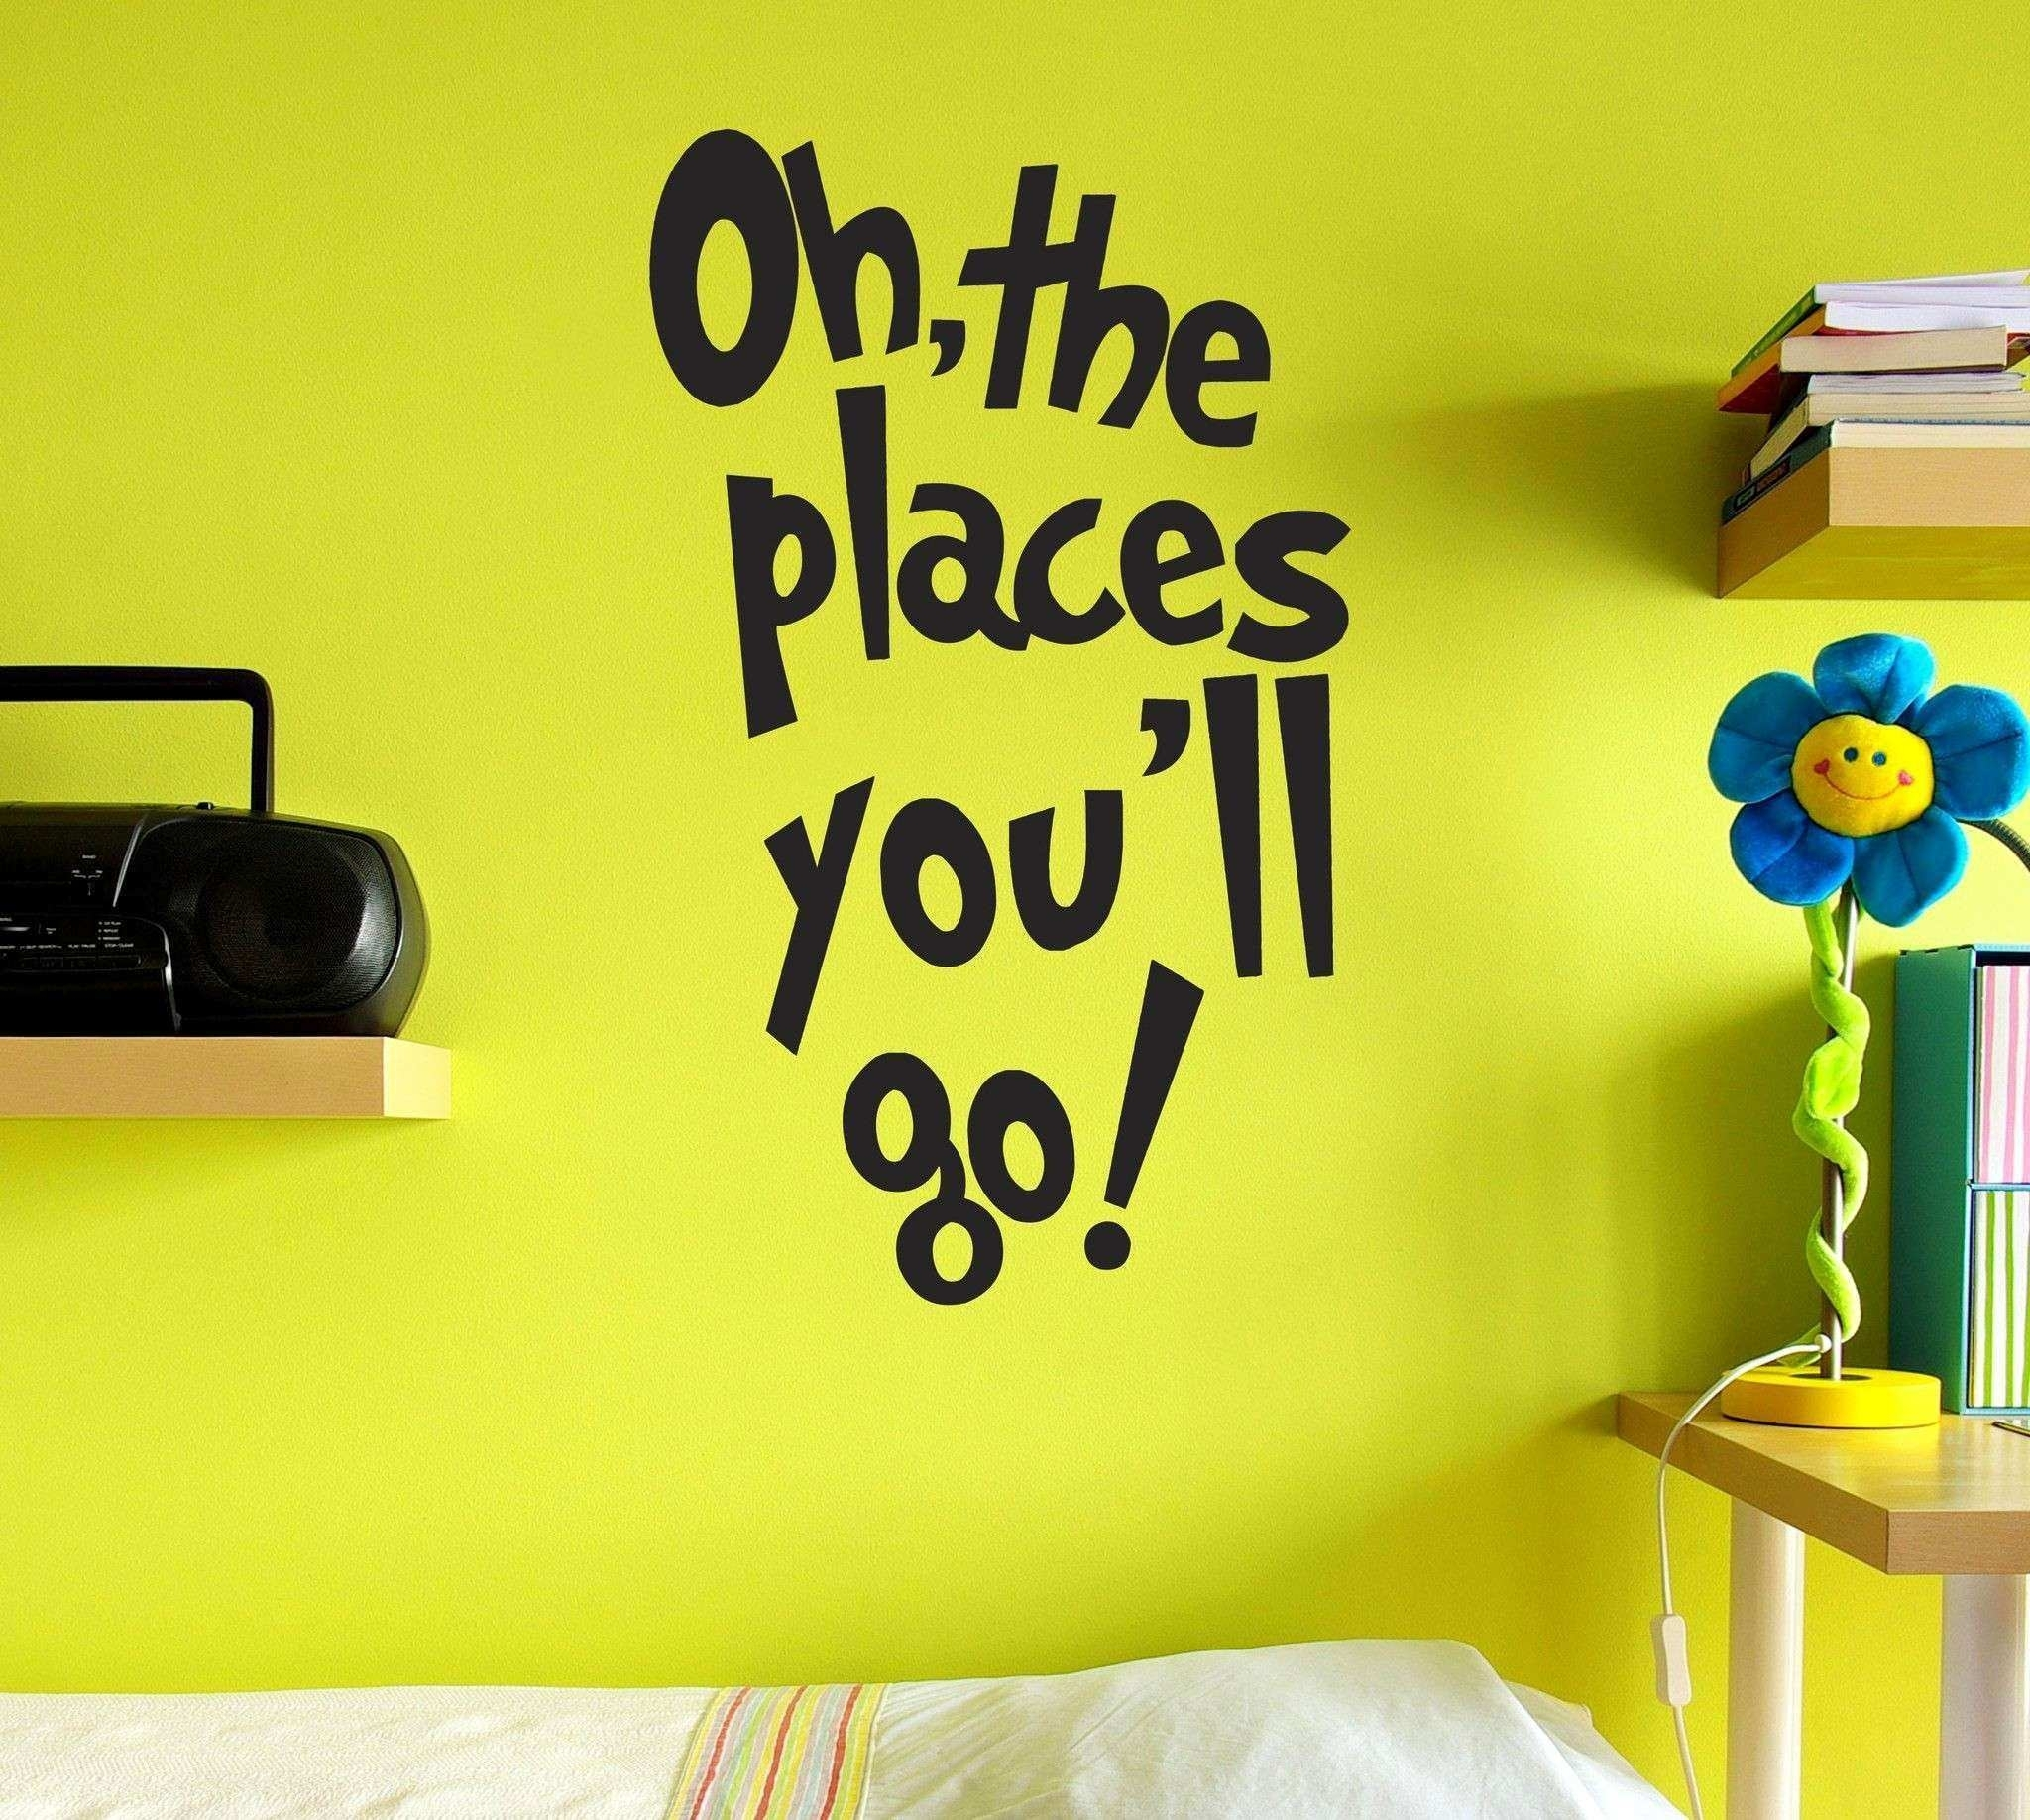 Dr Seuss Wall Decals New Fancy Dr Seuss Wall Art Position Wall Art Throughout Dr Seuss Wall Art (View 14 of 20)